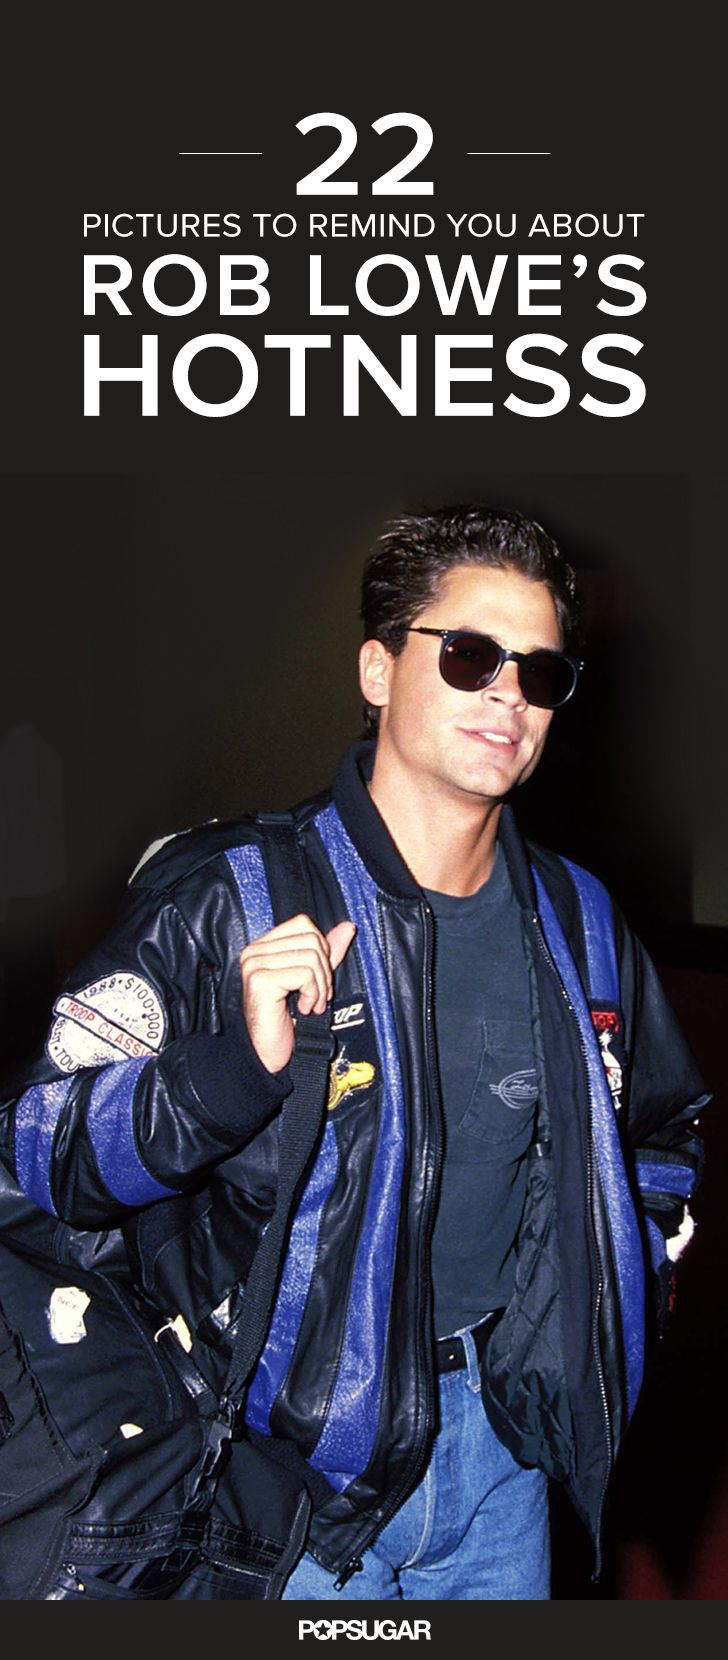 Rob Lowe has been a Hollywood heartthrob since the '80s, he's been married to his wife, Sheryl, for almost 25 years, and he has two grown children, but all that passing of time is downright confusing when you see his handsome face.